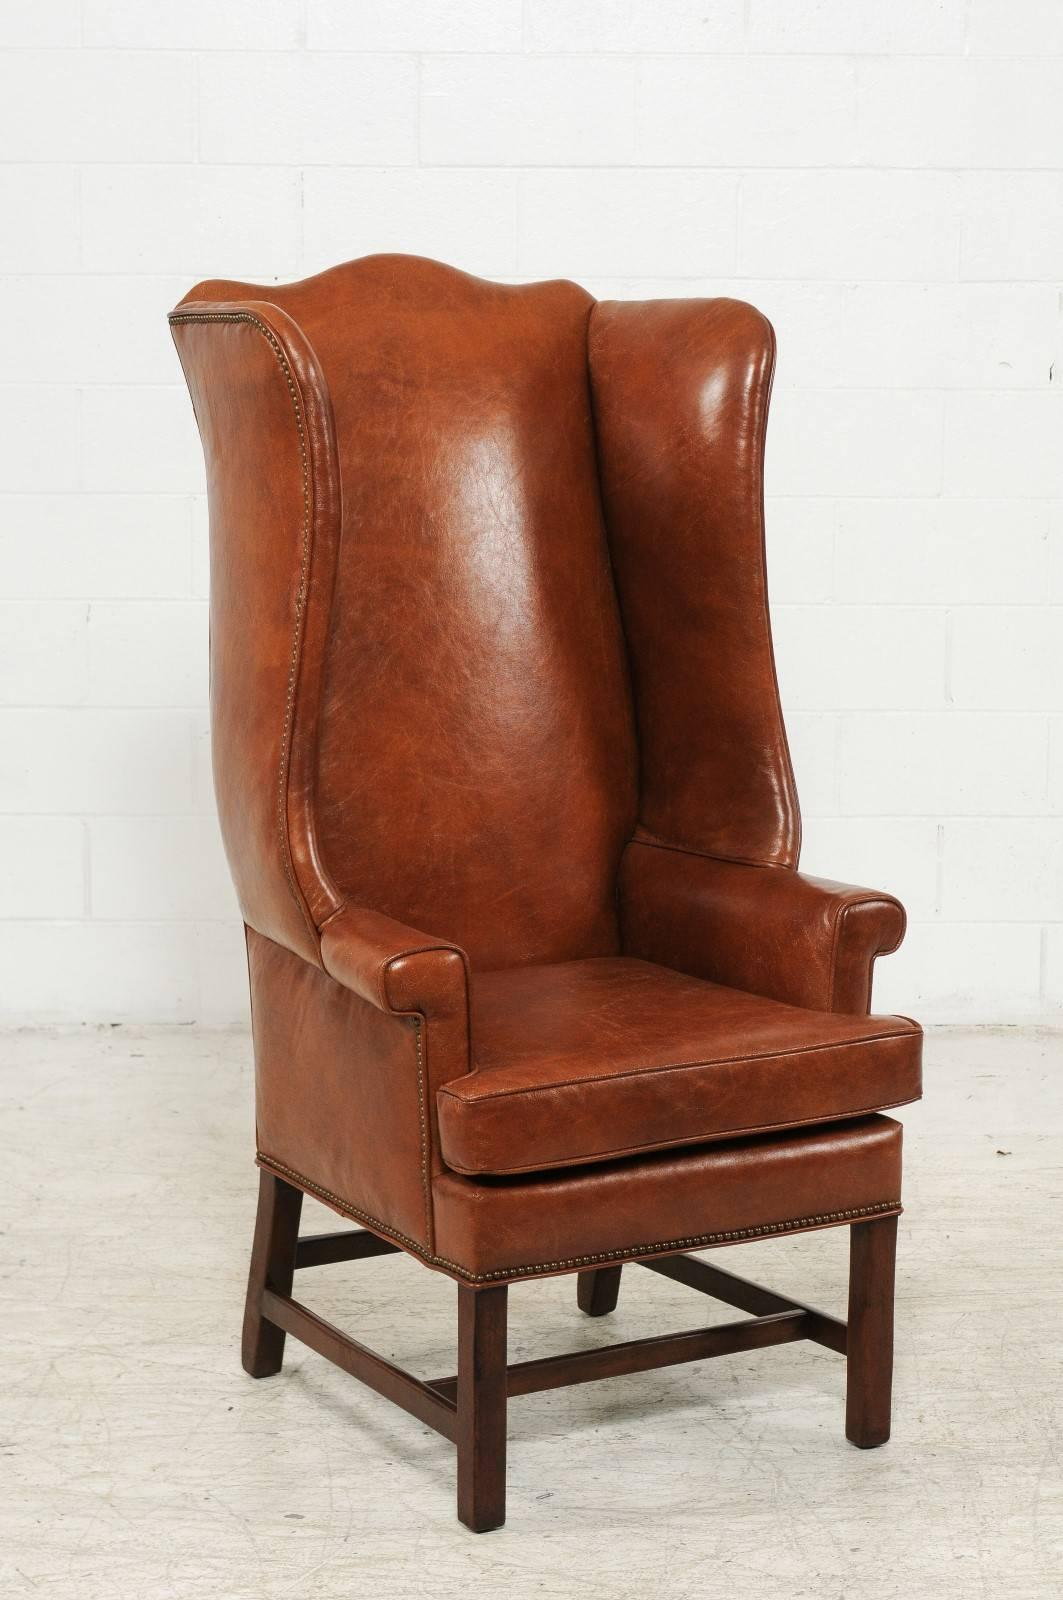 Superbe Mid Century Modern Vintage English Midcentury Brown Leather Wingback Chair  With Brass Nailhead Trim For